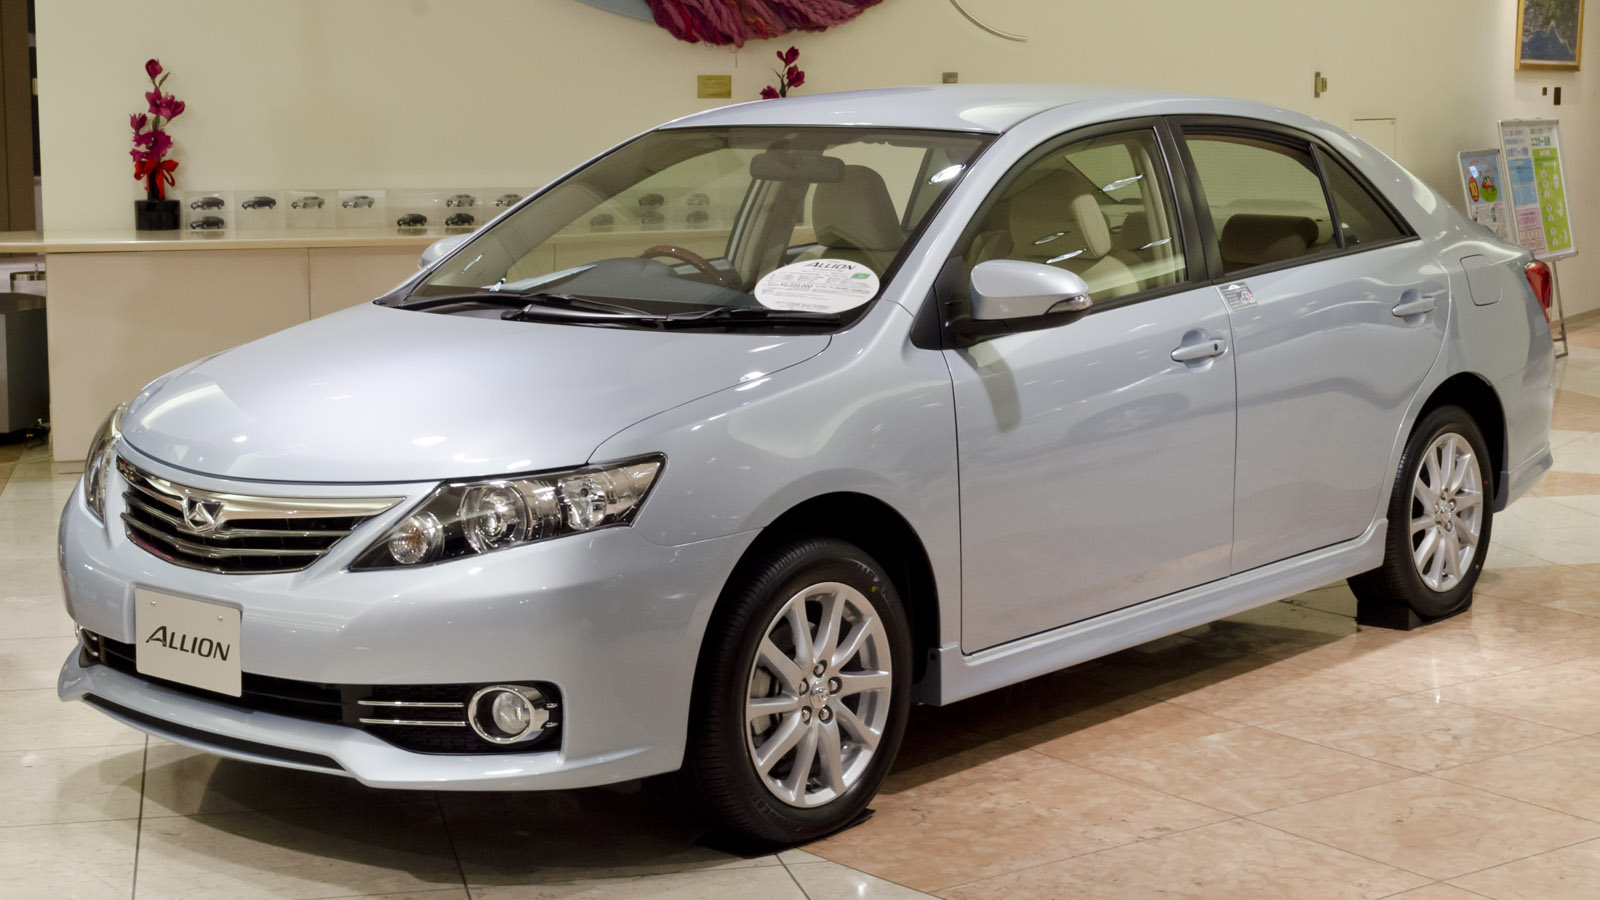 Toyota Allion   pictures, information and specs - Auto-Database.com